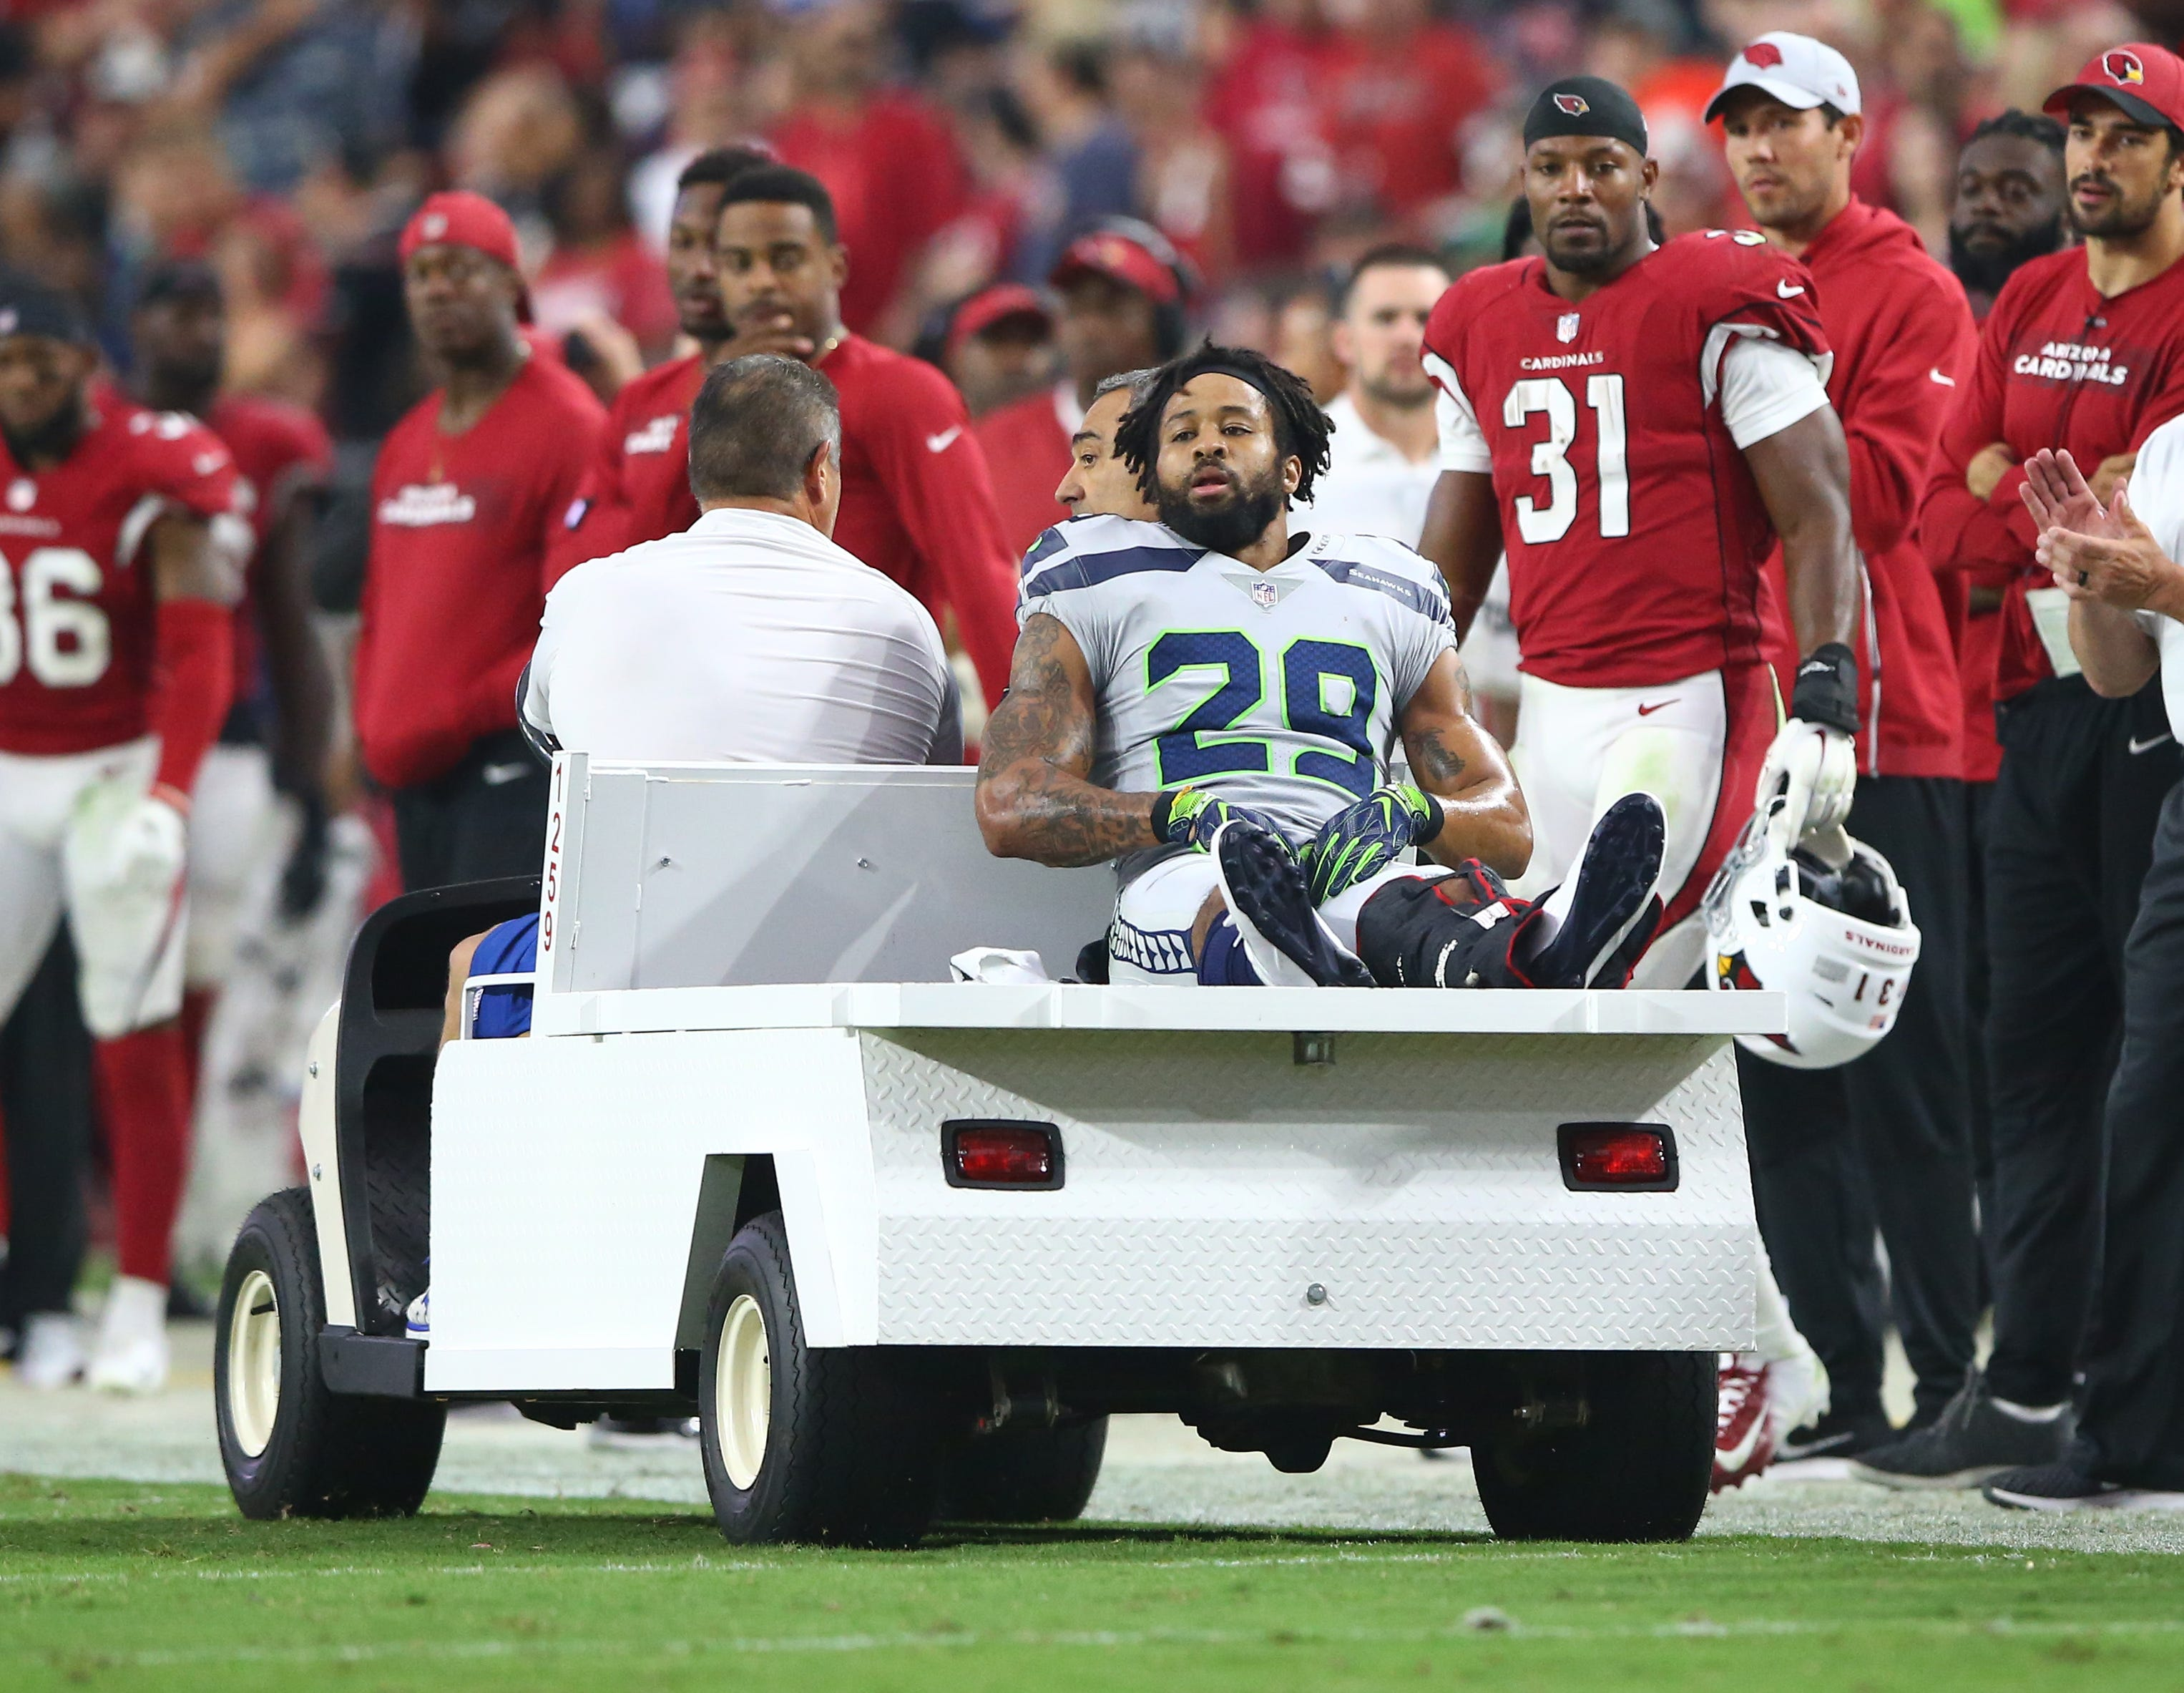 Report: Seahawks' Earl Thomas fined by NFL for obscene gesture toward sideline after injury